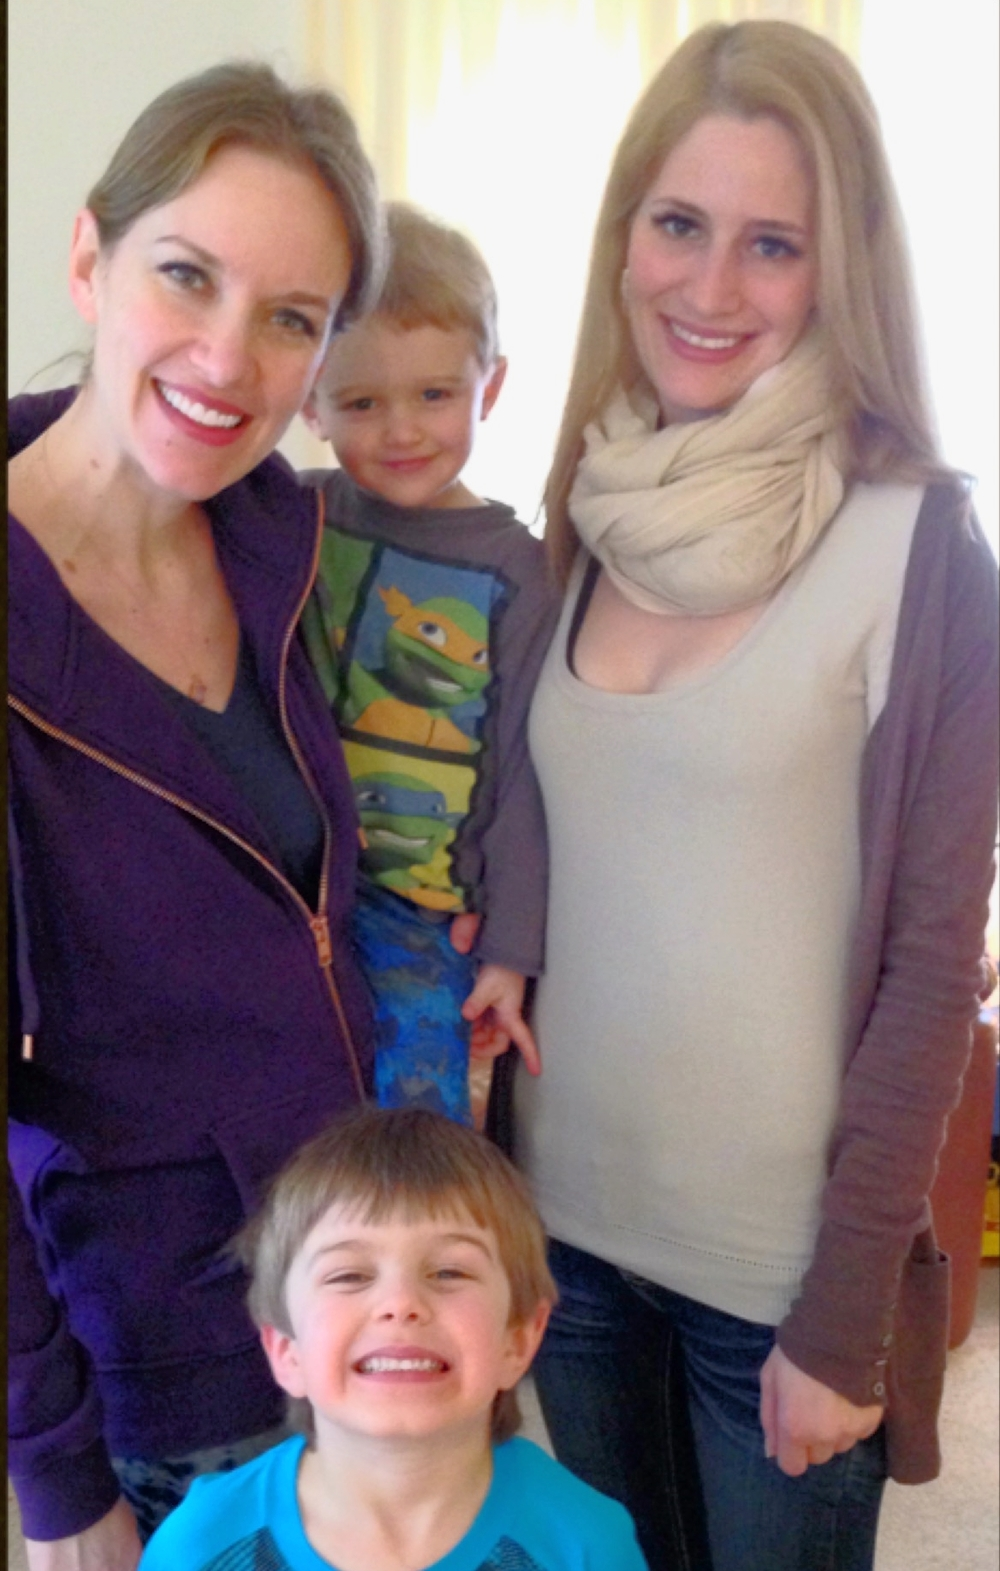 Meg and her multicultural minions (Max Elijah and Milo) with host sister Zita Lettenmeier - taken in Berlin, Feb 2016.